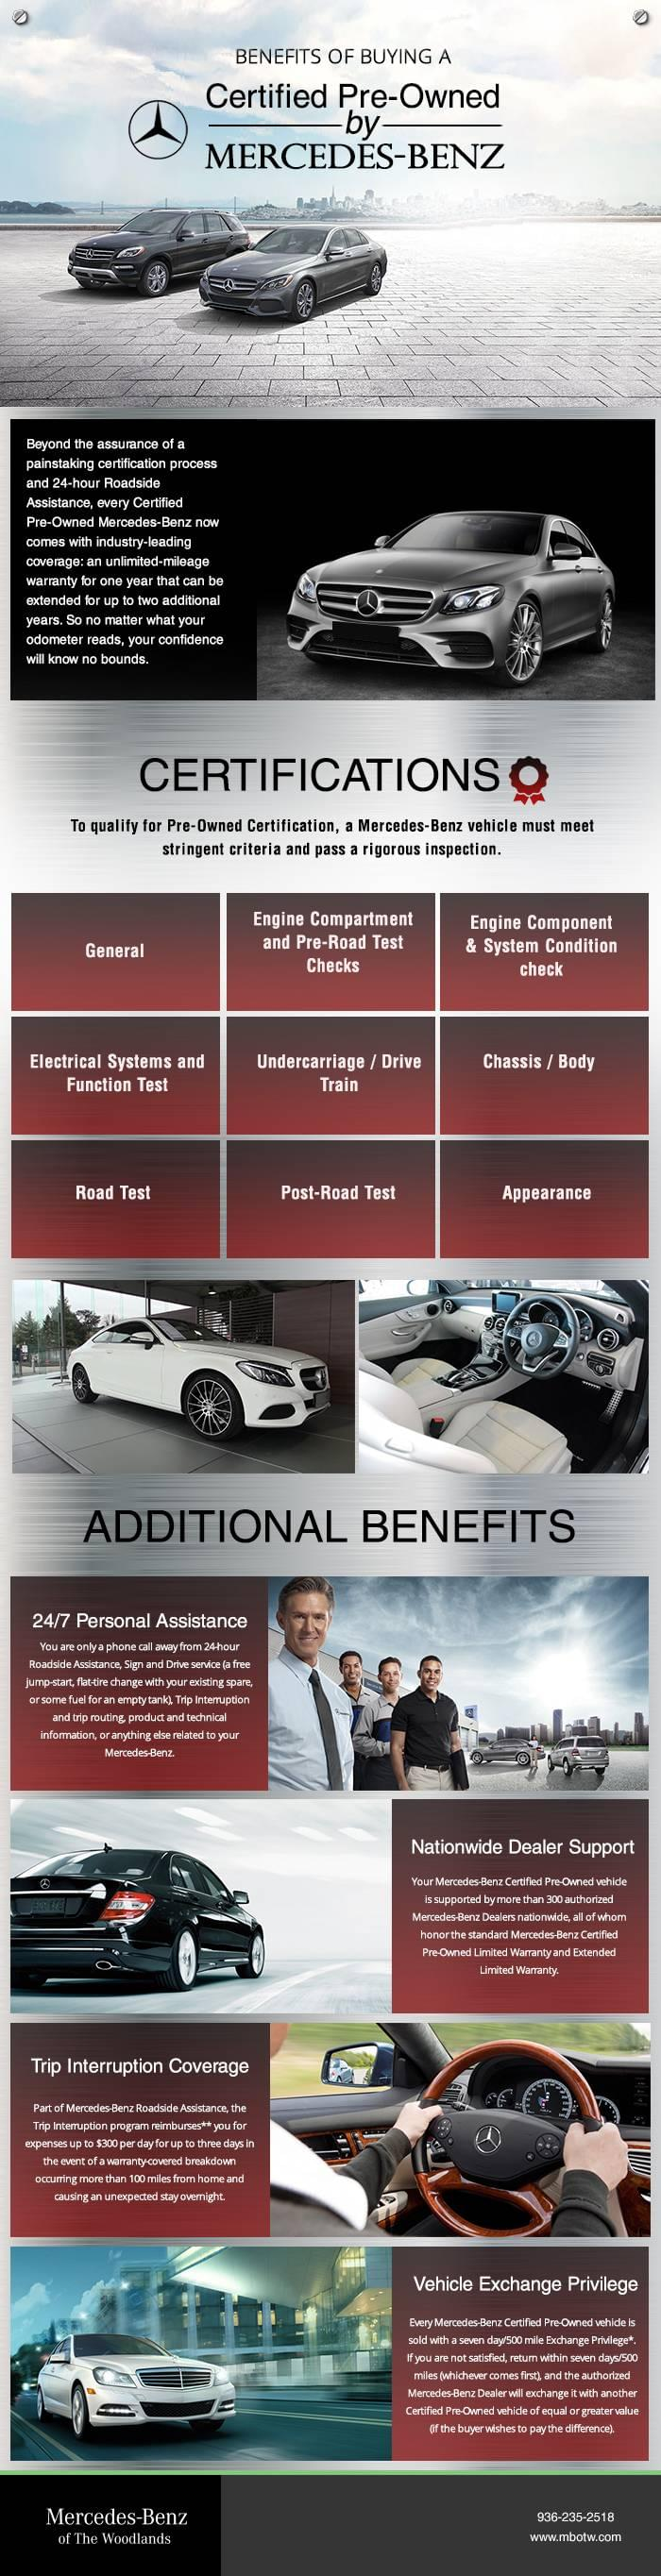 Benefits of buying a certified pre owned by mercedes benz for Mercedes benz cpo warranty coverage